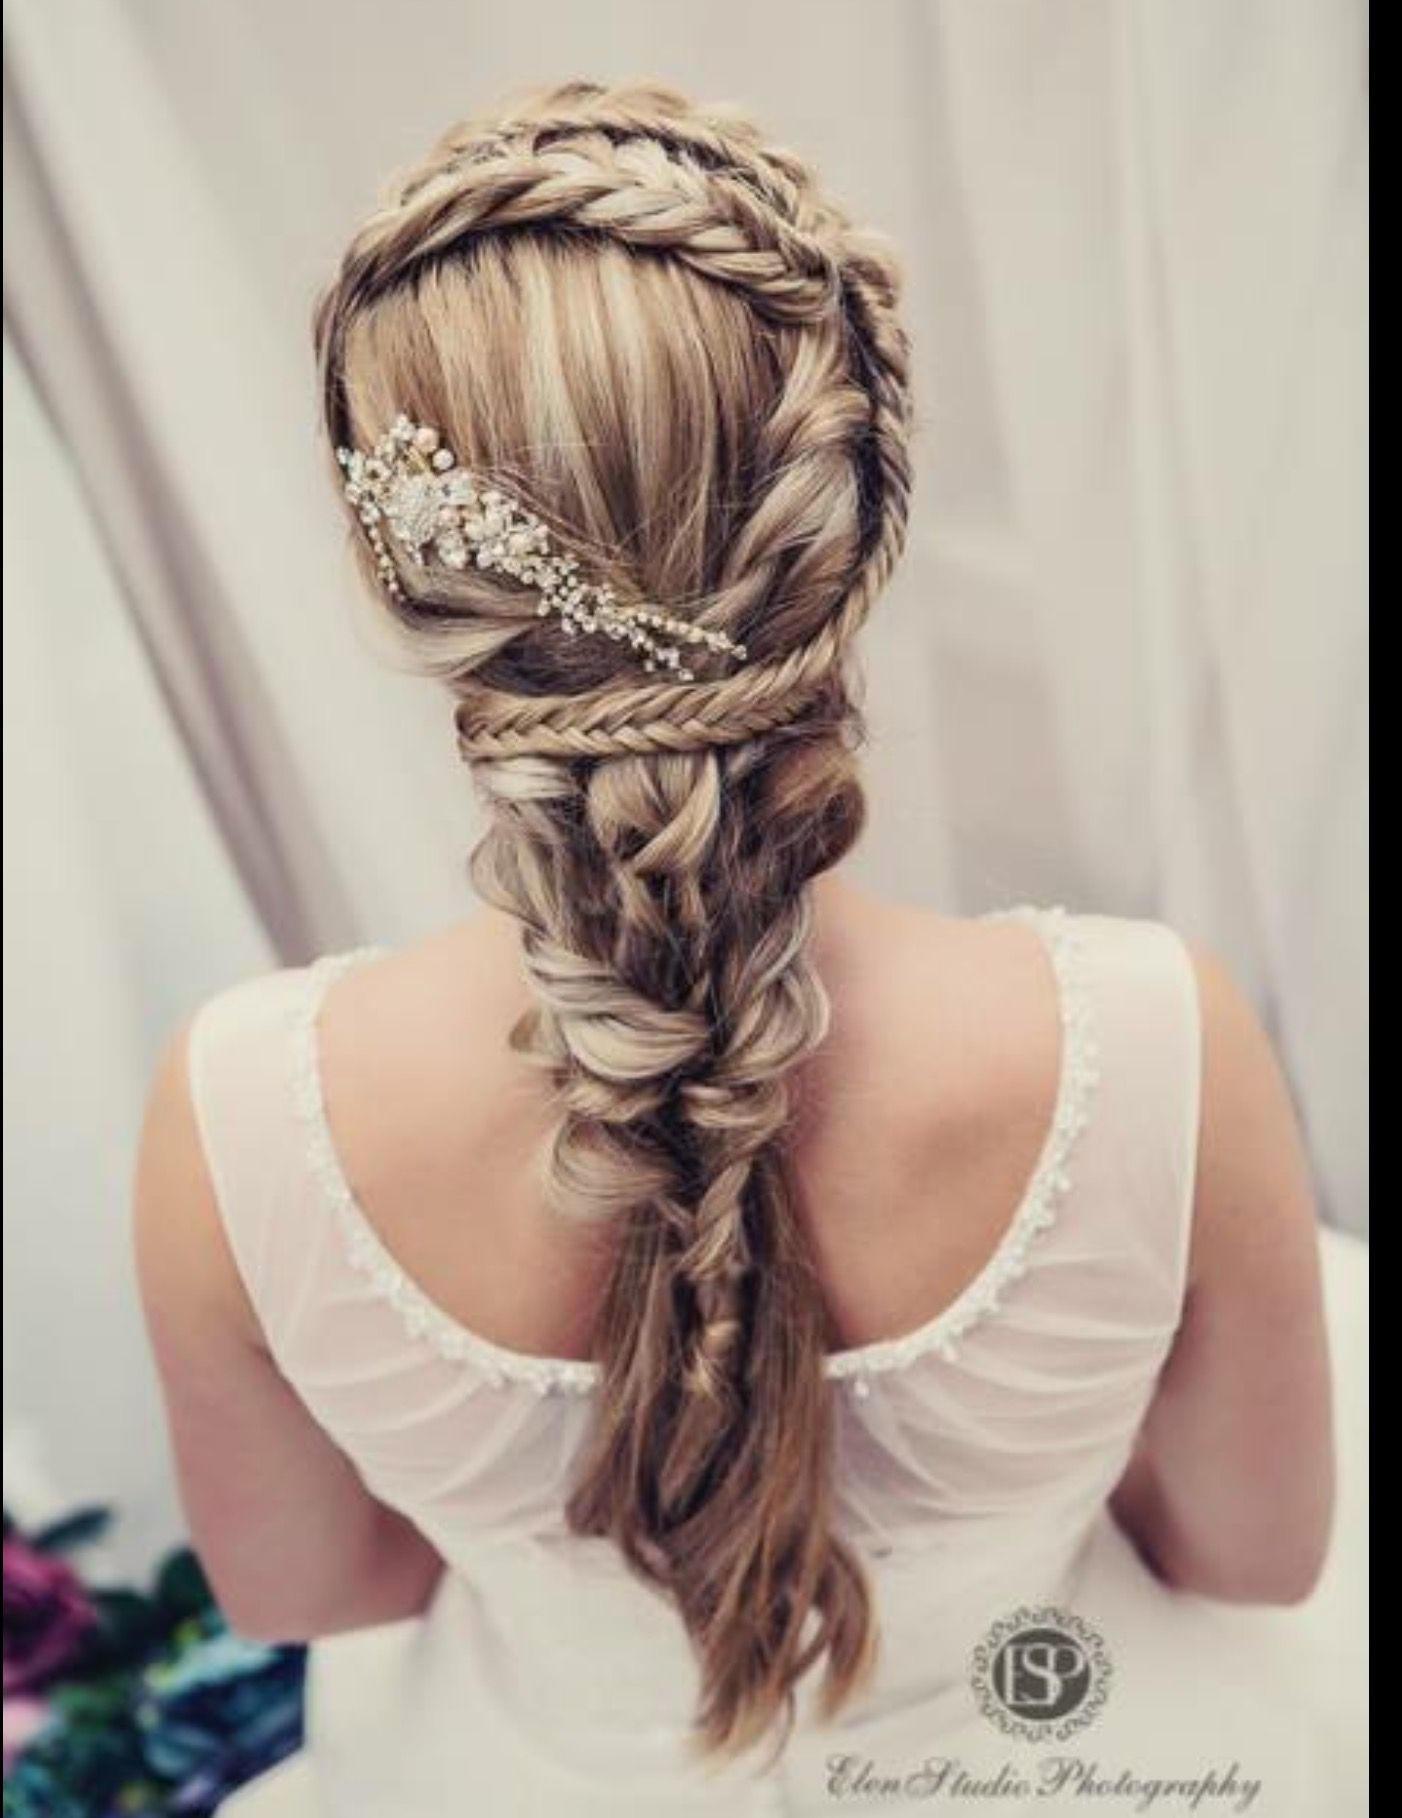 Romantic braided design bridal braids updo wedding